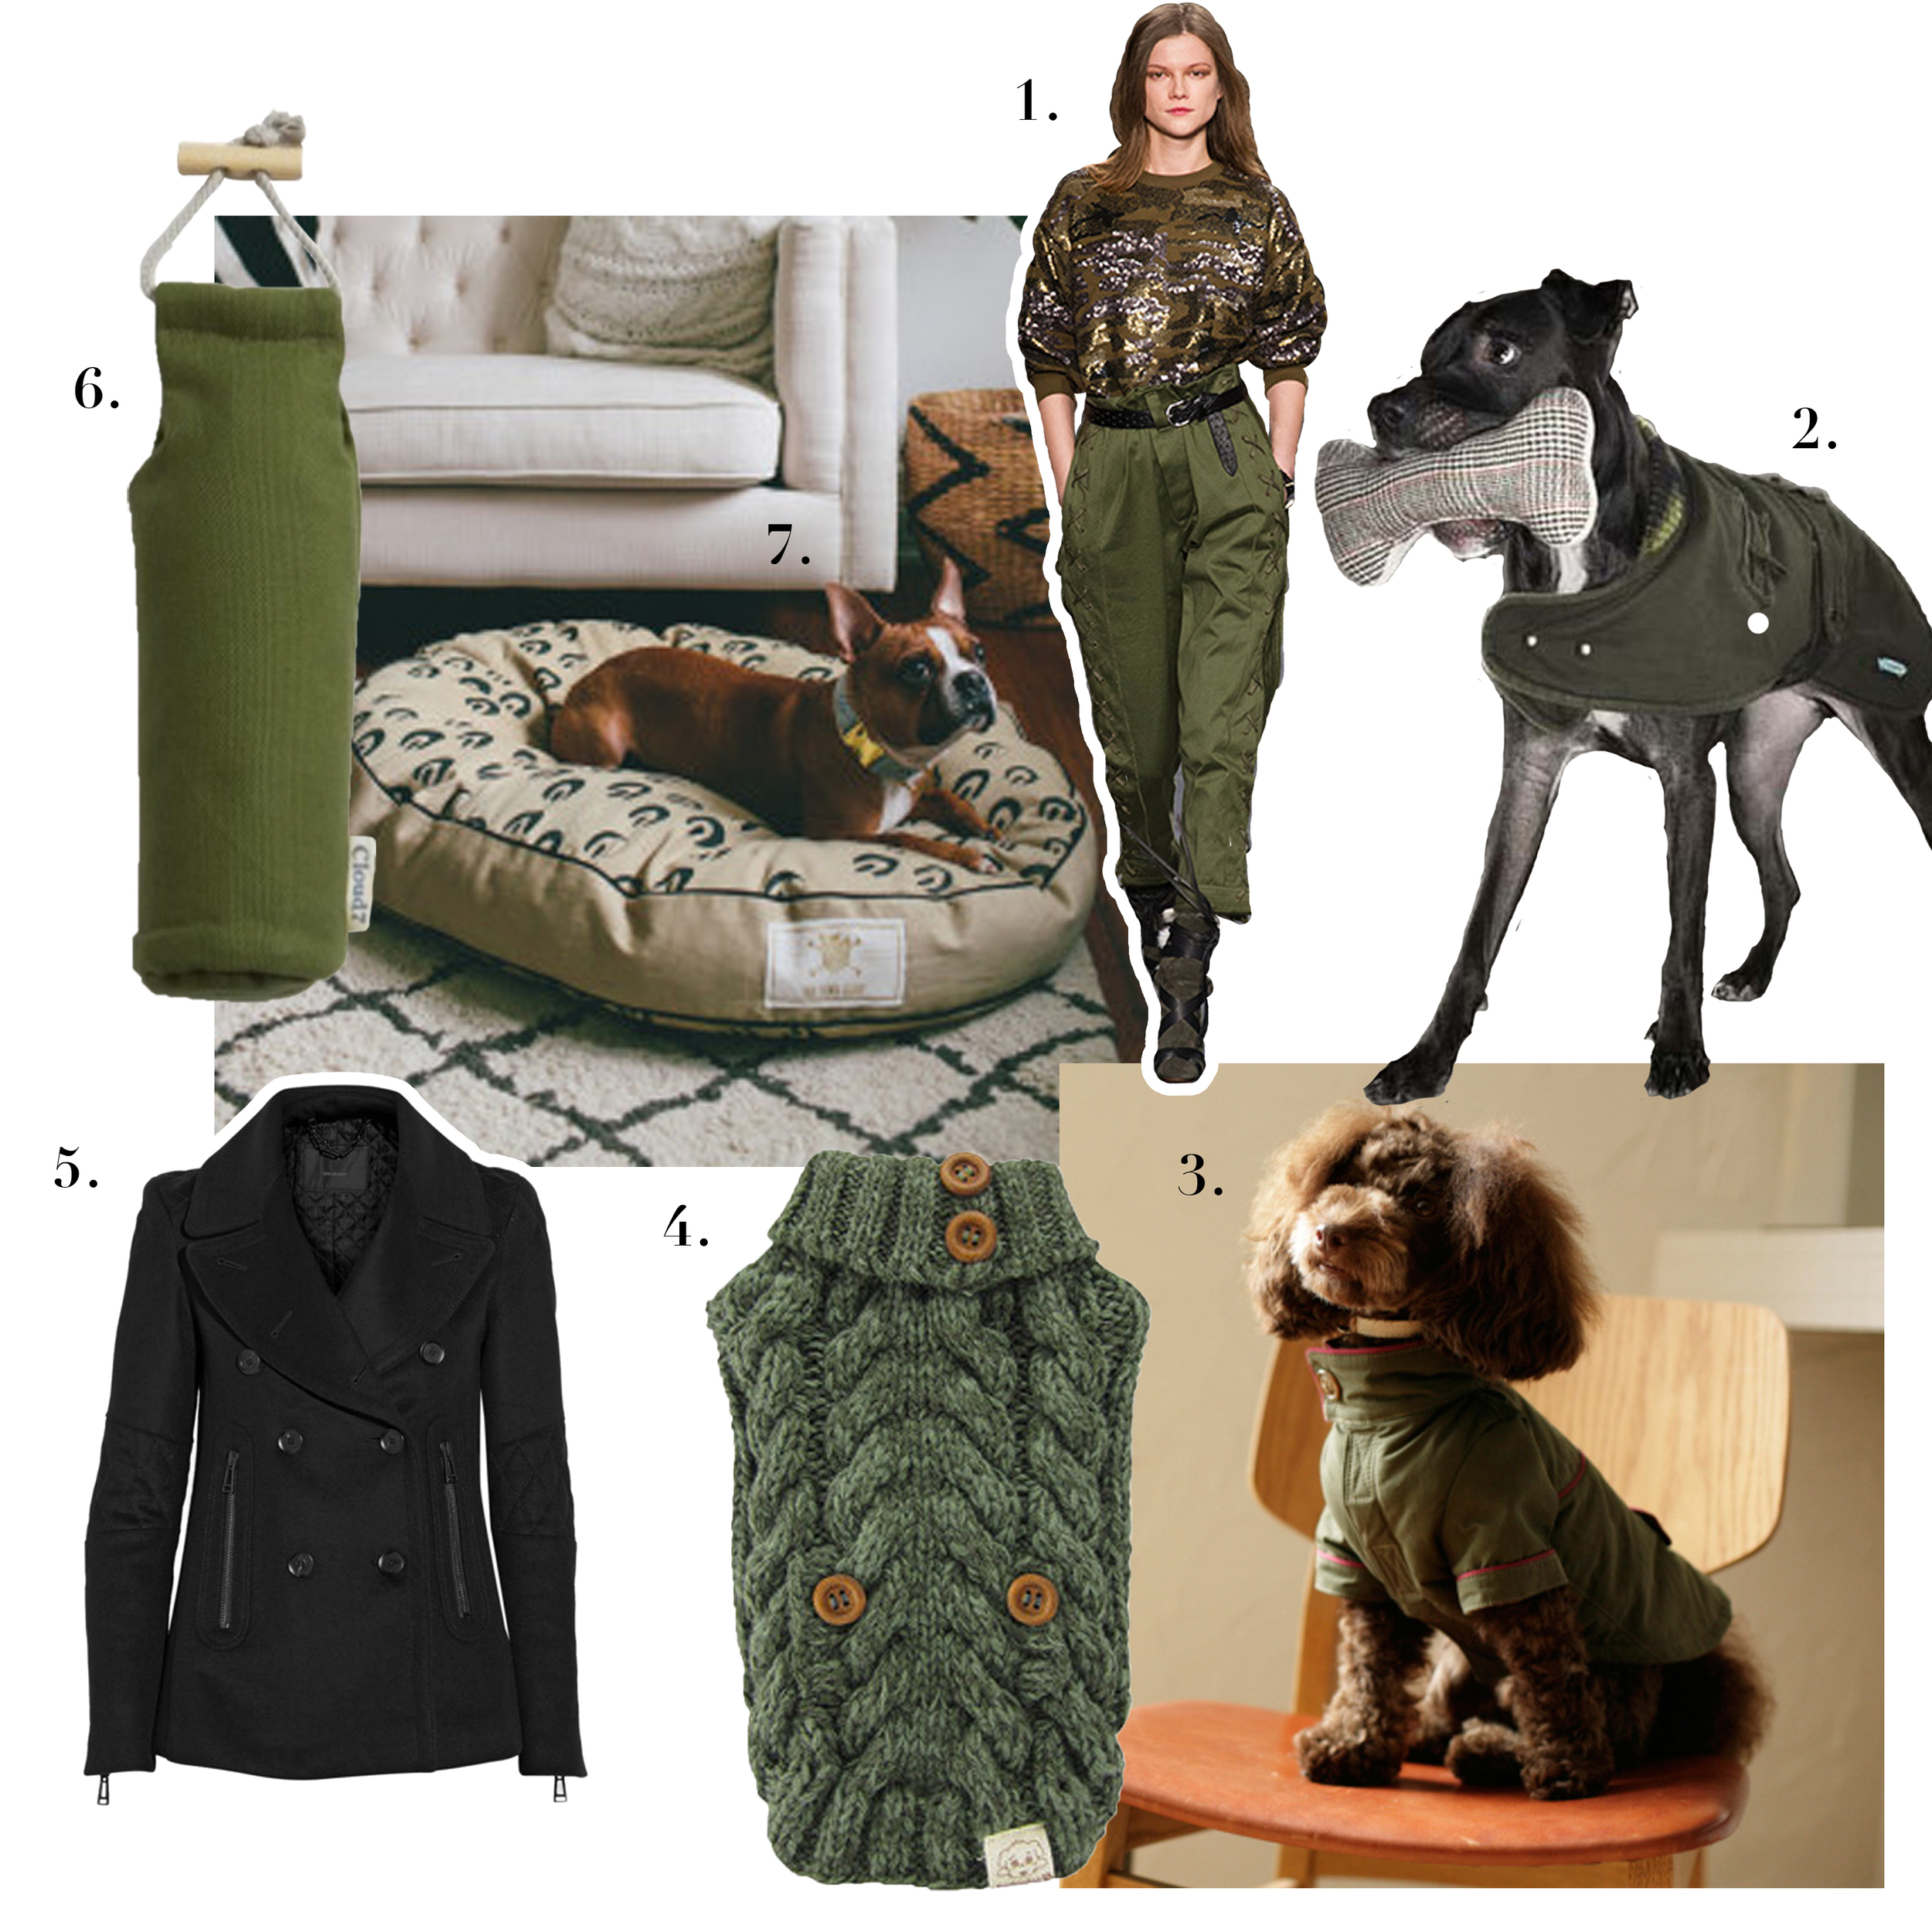 1. Isabel Marant,     Fall 2014 Collection      2. Rufhaus Couture,     Joe Dog Coat       3. Free Stitch,     Military Jacket       4. Fou Fou Dog,    Aspen Knit Sweater      5. Belstaff,     Hawthorne Wool and Cashmere Jacket      6. See Scout Sleep,     Fais Do-Do Large Bed      7. Cloud7,    Training Dummy - New Green     Mailchimp Image by     Found My Animal